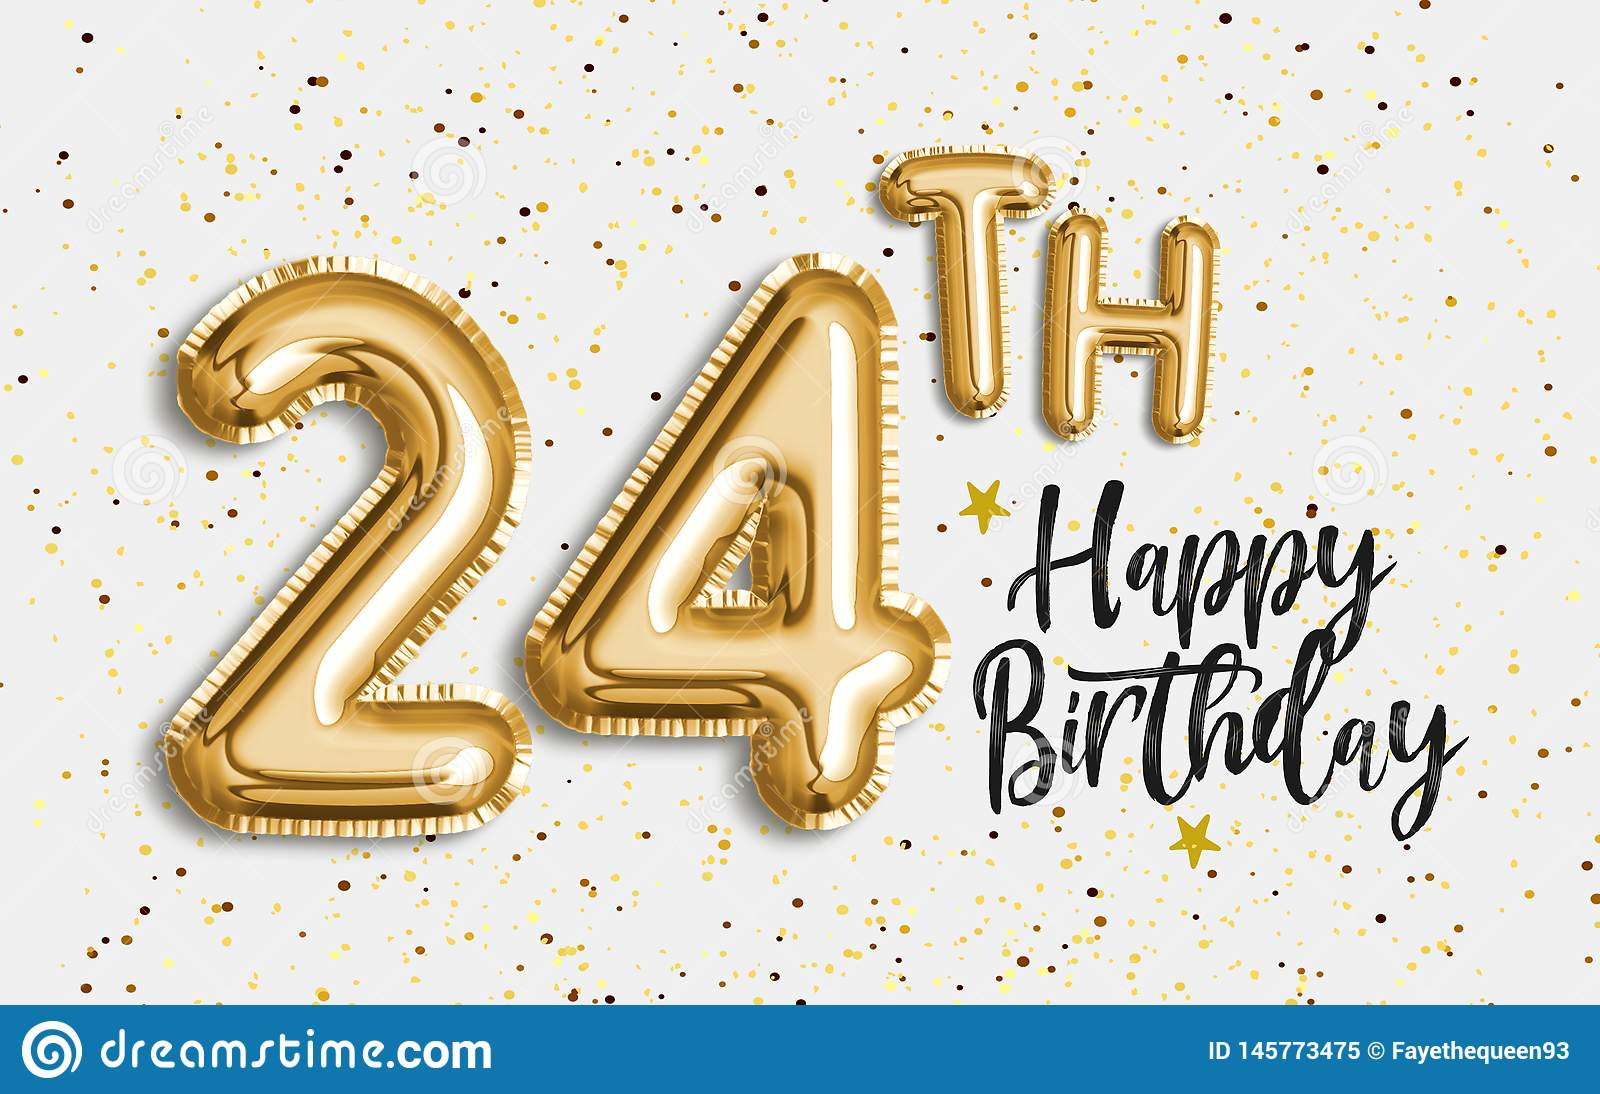 Happy 24th Birthday Gold Foil Balloon Greeting Background